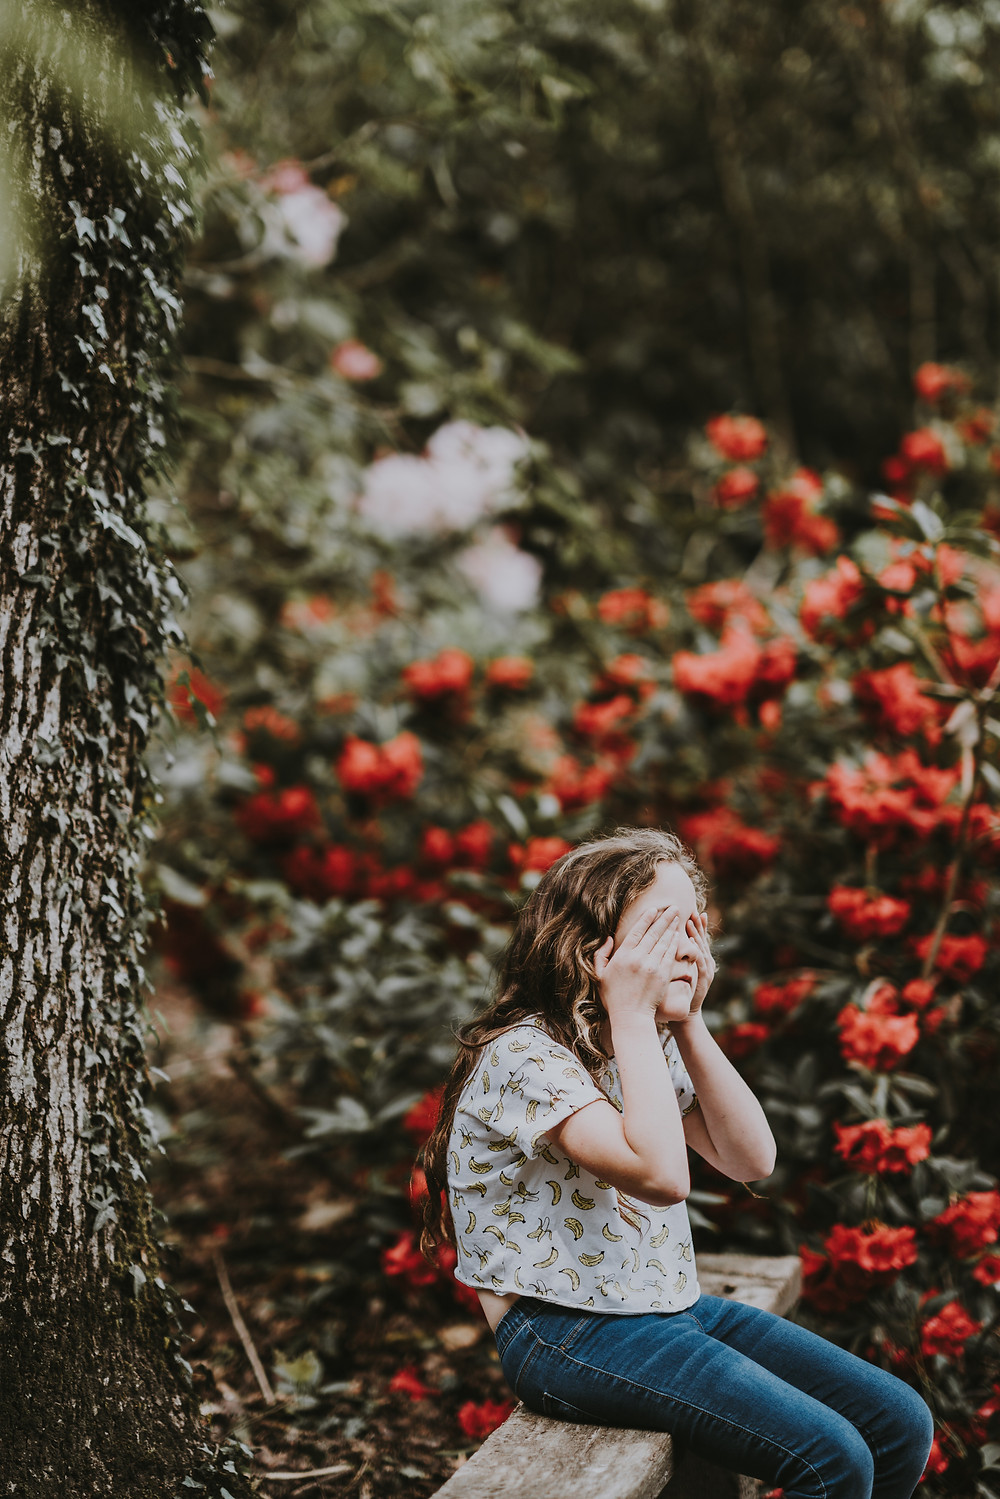 Photo of girl sitting on fence covering her eyes by Annie Spratt on Unsplash